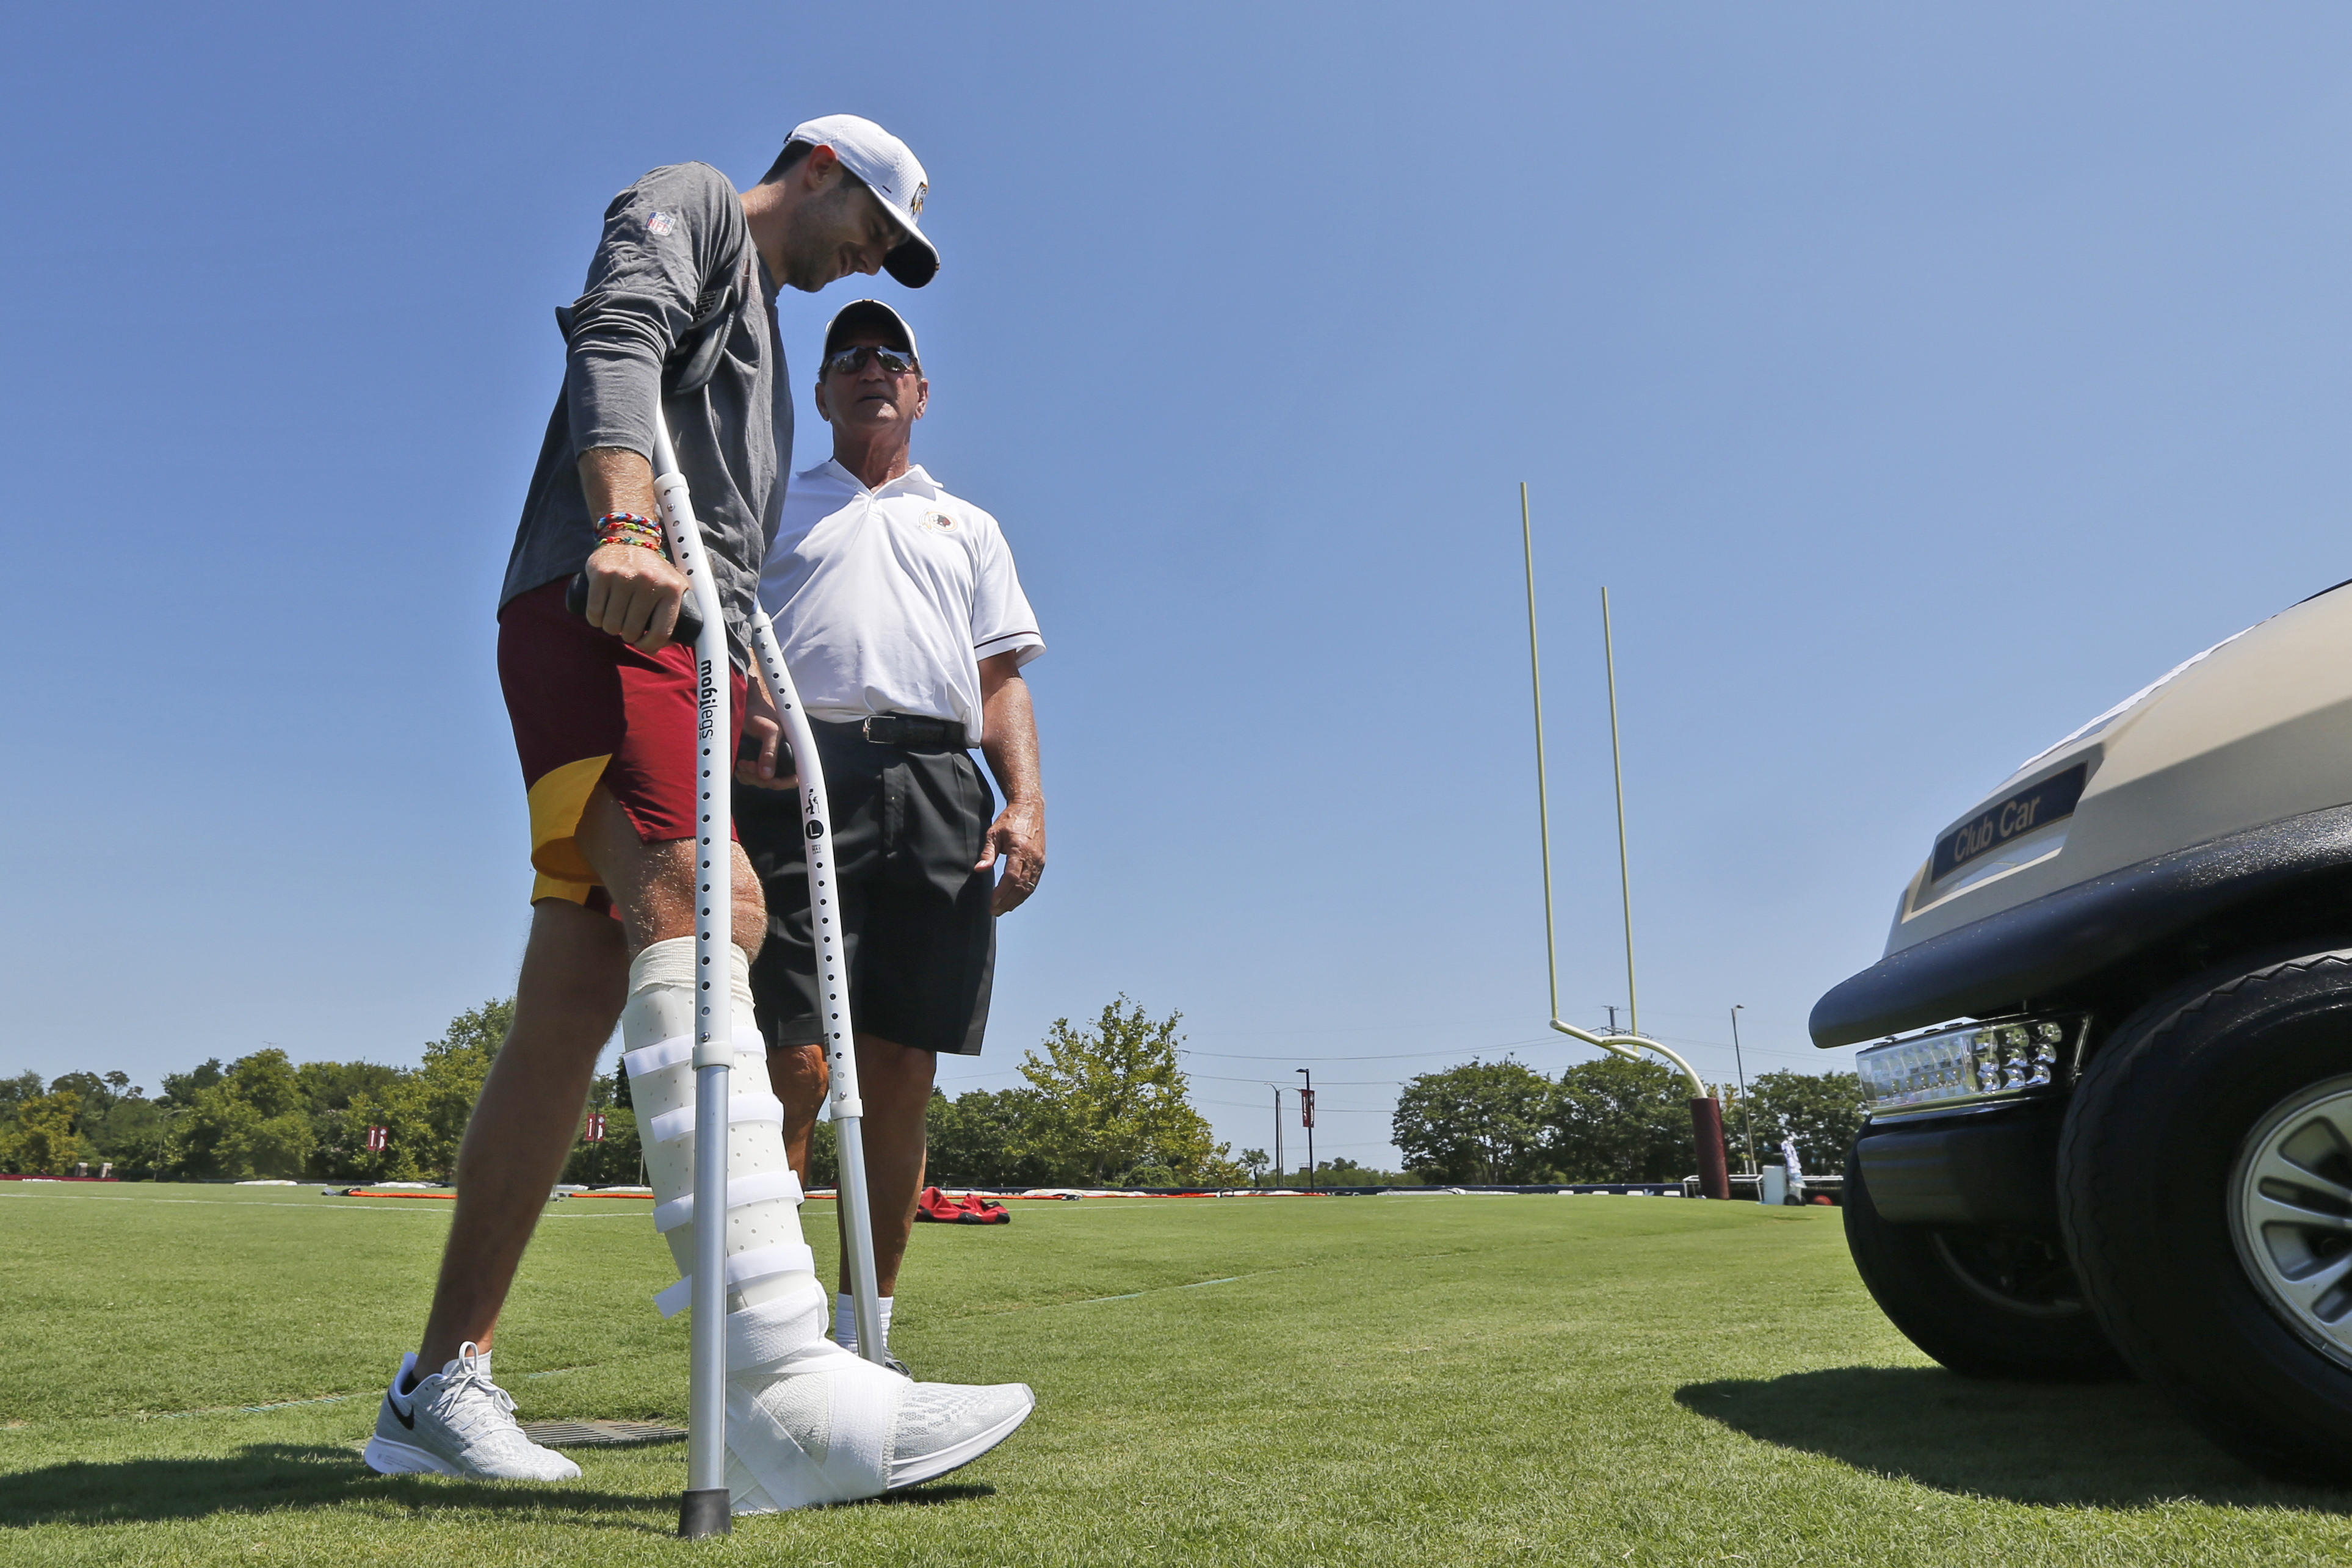 Washington's Alex Smith, left, reportedly has had 17 surgeries since breaking his right leg 11 months ago. (AP)